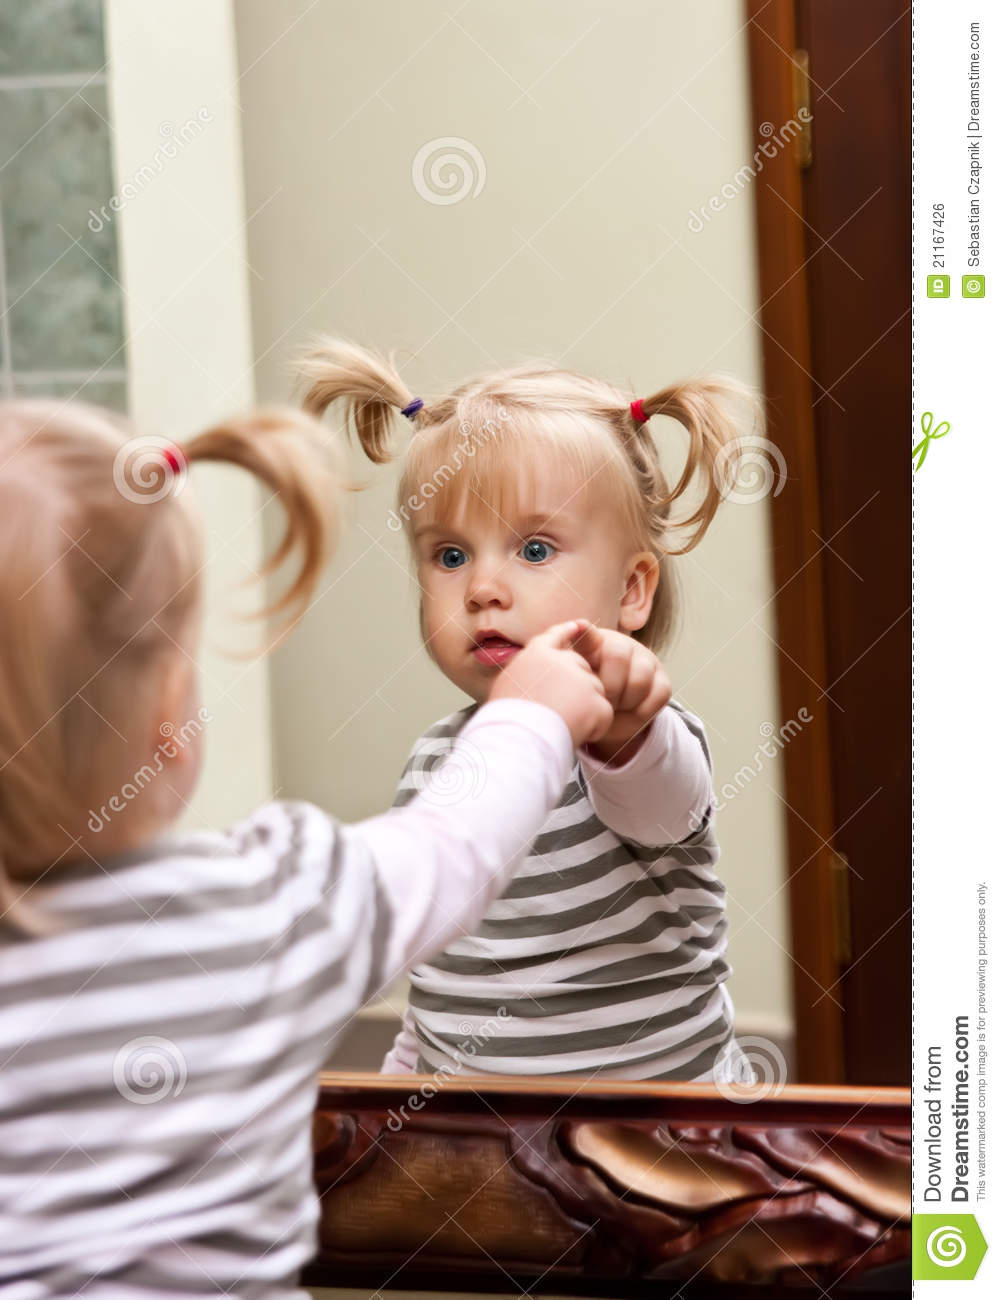 Girl and mirror royalty free stock image image 21167426 for Mirror 7th girl